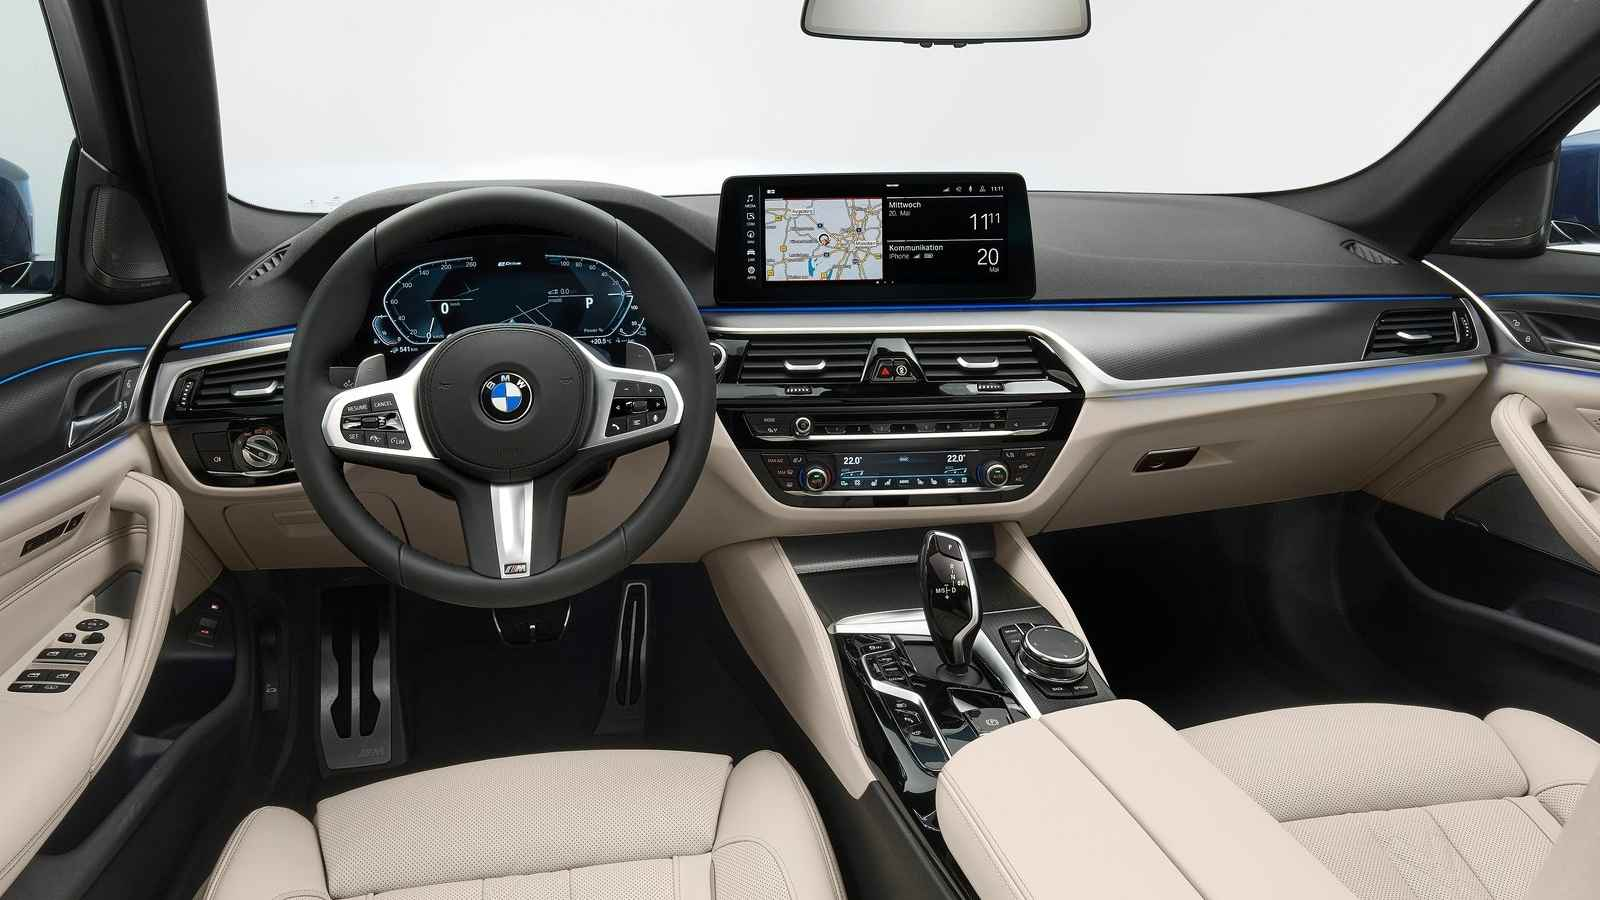 Most of the updates to the 2021 BMW 5 Series are on the inside. Image: BMW